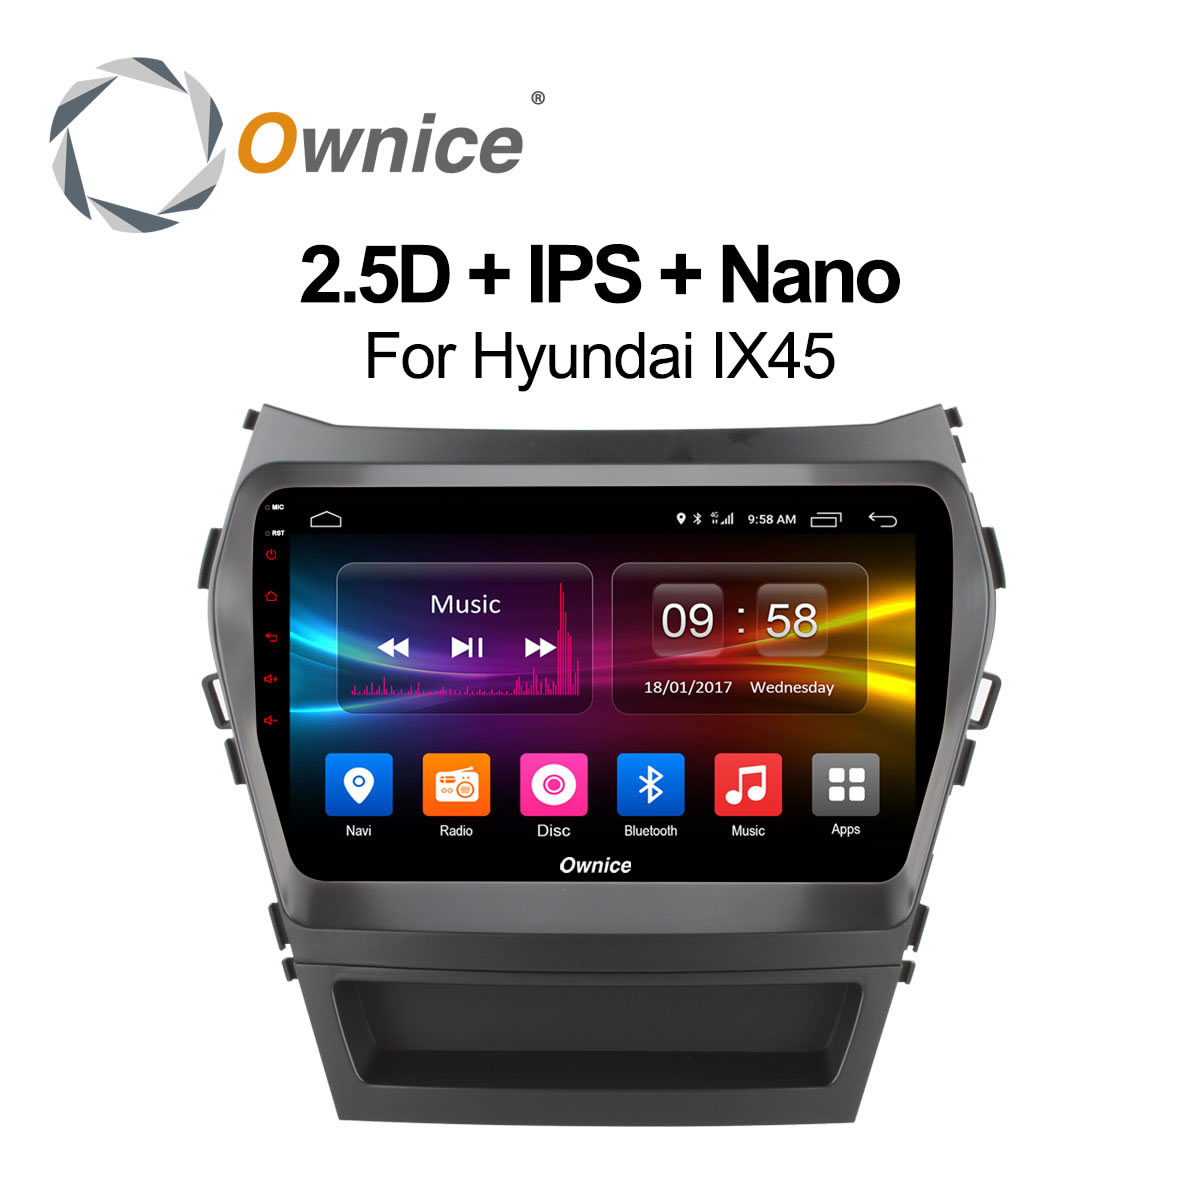 Ownice C500 Octa Core android 6 0 car dvd gps player For HYUNDAI IX45 2013 SANTA